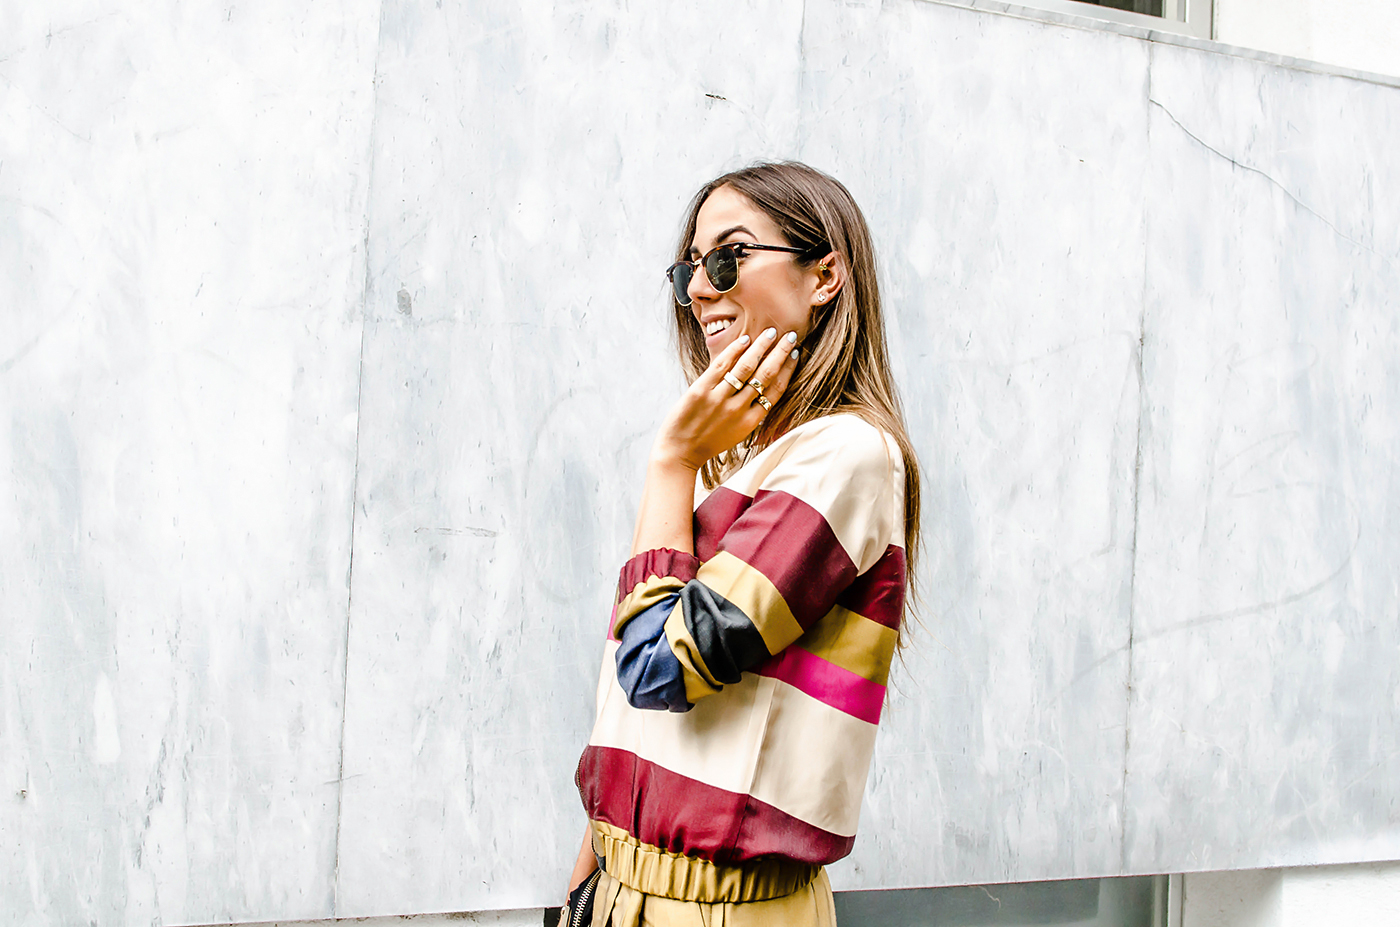 alison liaudat, blog mode suisee, co-ordinate, fashion blogger, guess, h&m, H&M trend collection, pop color, ray ban, swiss fashion blogger,